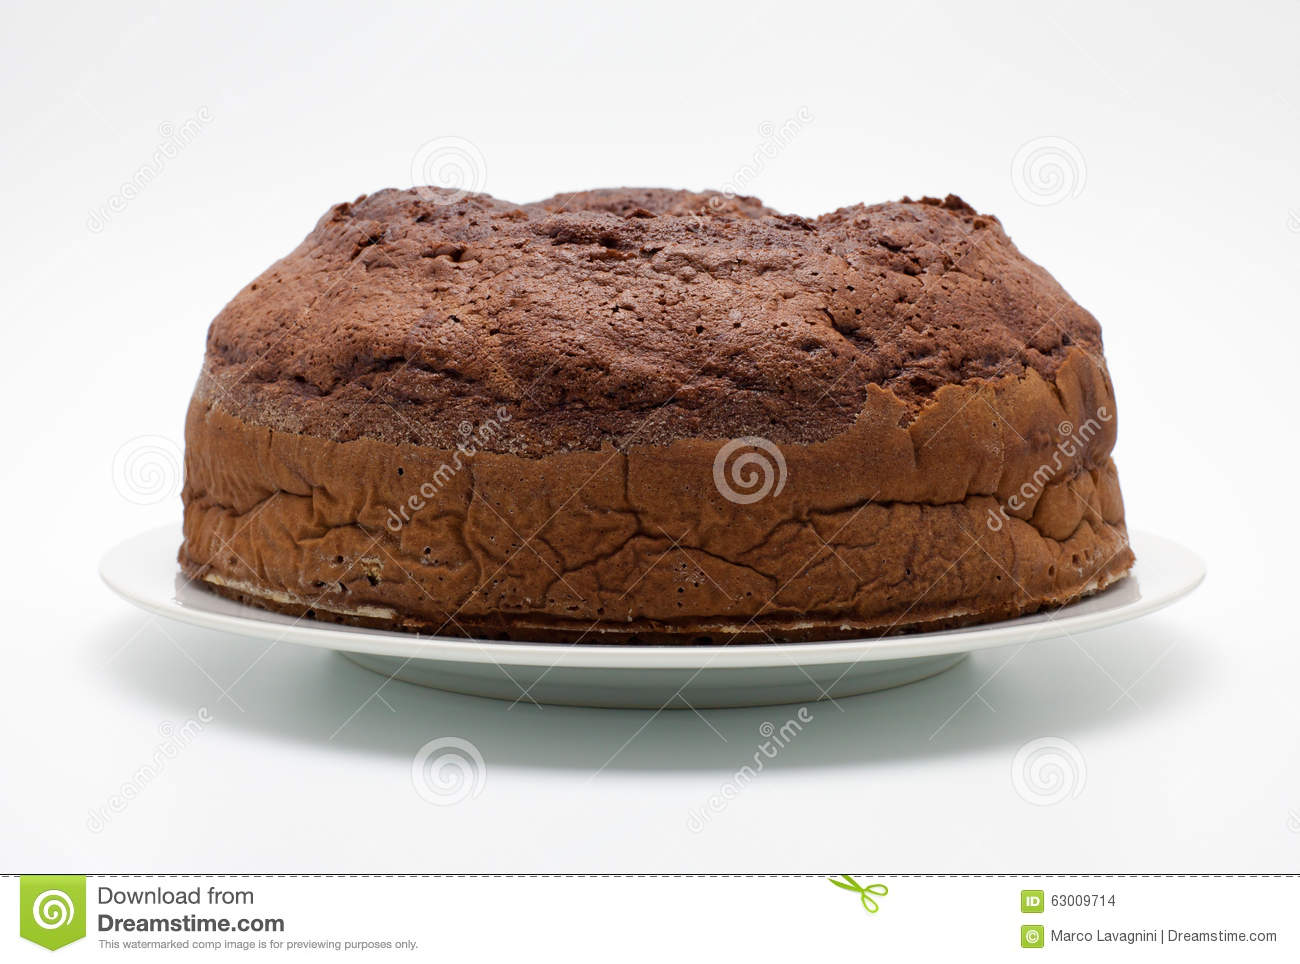 Pure Chocolate Cake Images : Ciambellone (pure Chocolate) Stock Photo - Image: 63009714